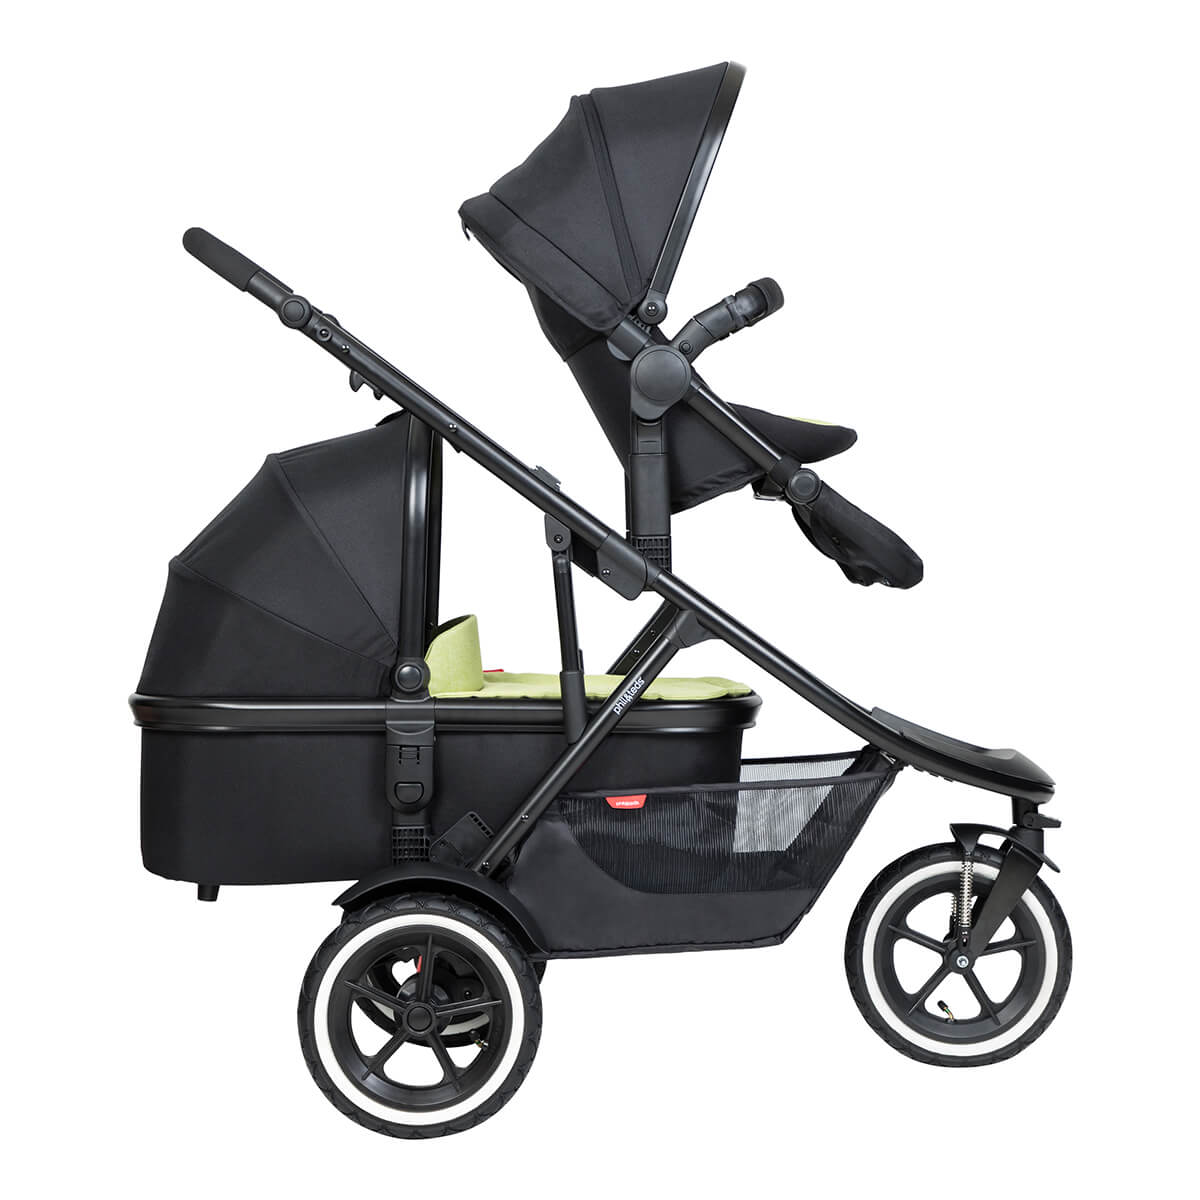 https://cdn.accentuate.io/4417276117026/19437753499826/philteds-sport-buggy-with-double-kit-extended-clip-and-snug-carrycot-side-view-v1626482705691.jpg?1200x1200